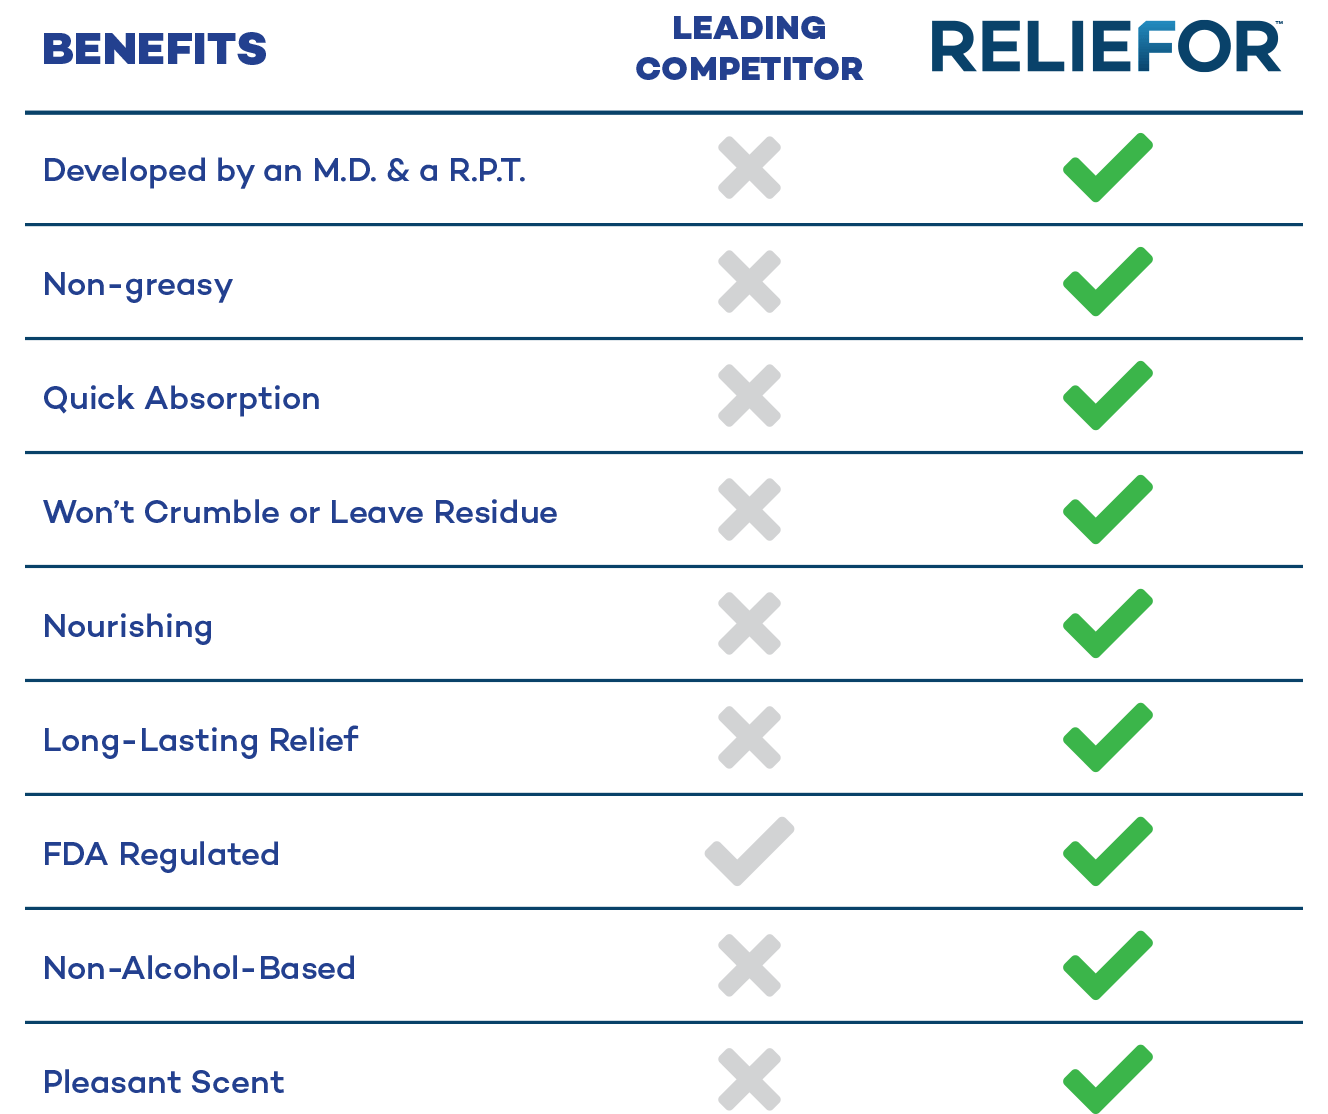 reliefor competitive chart